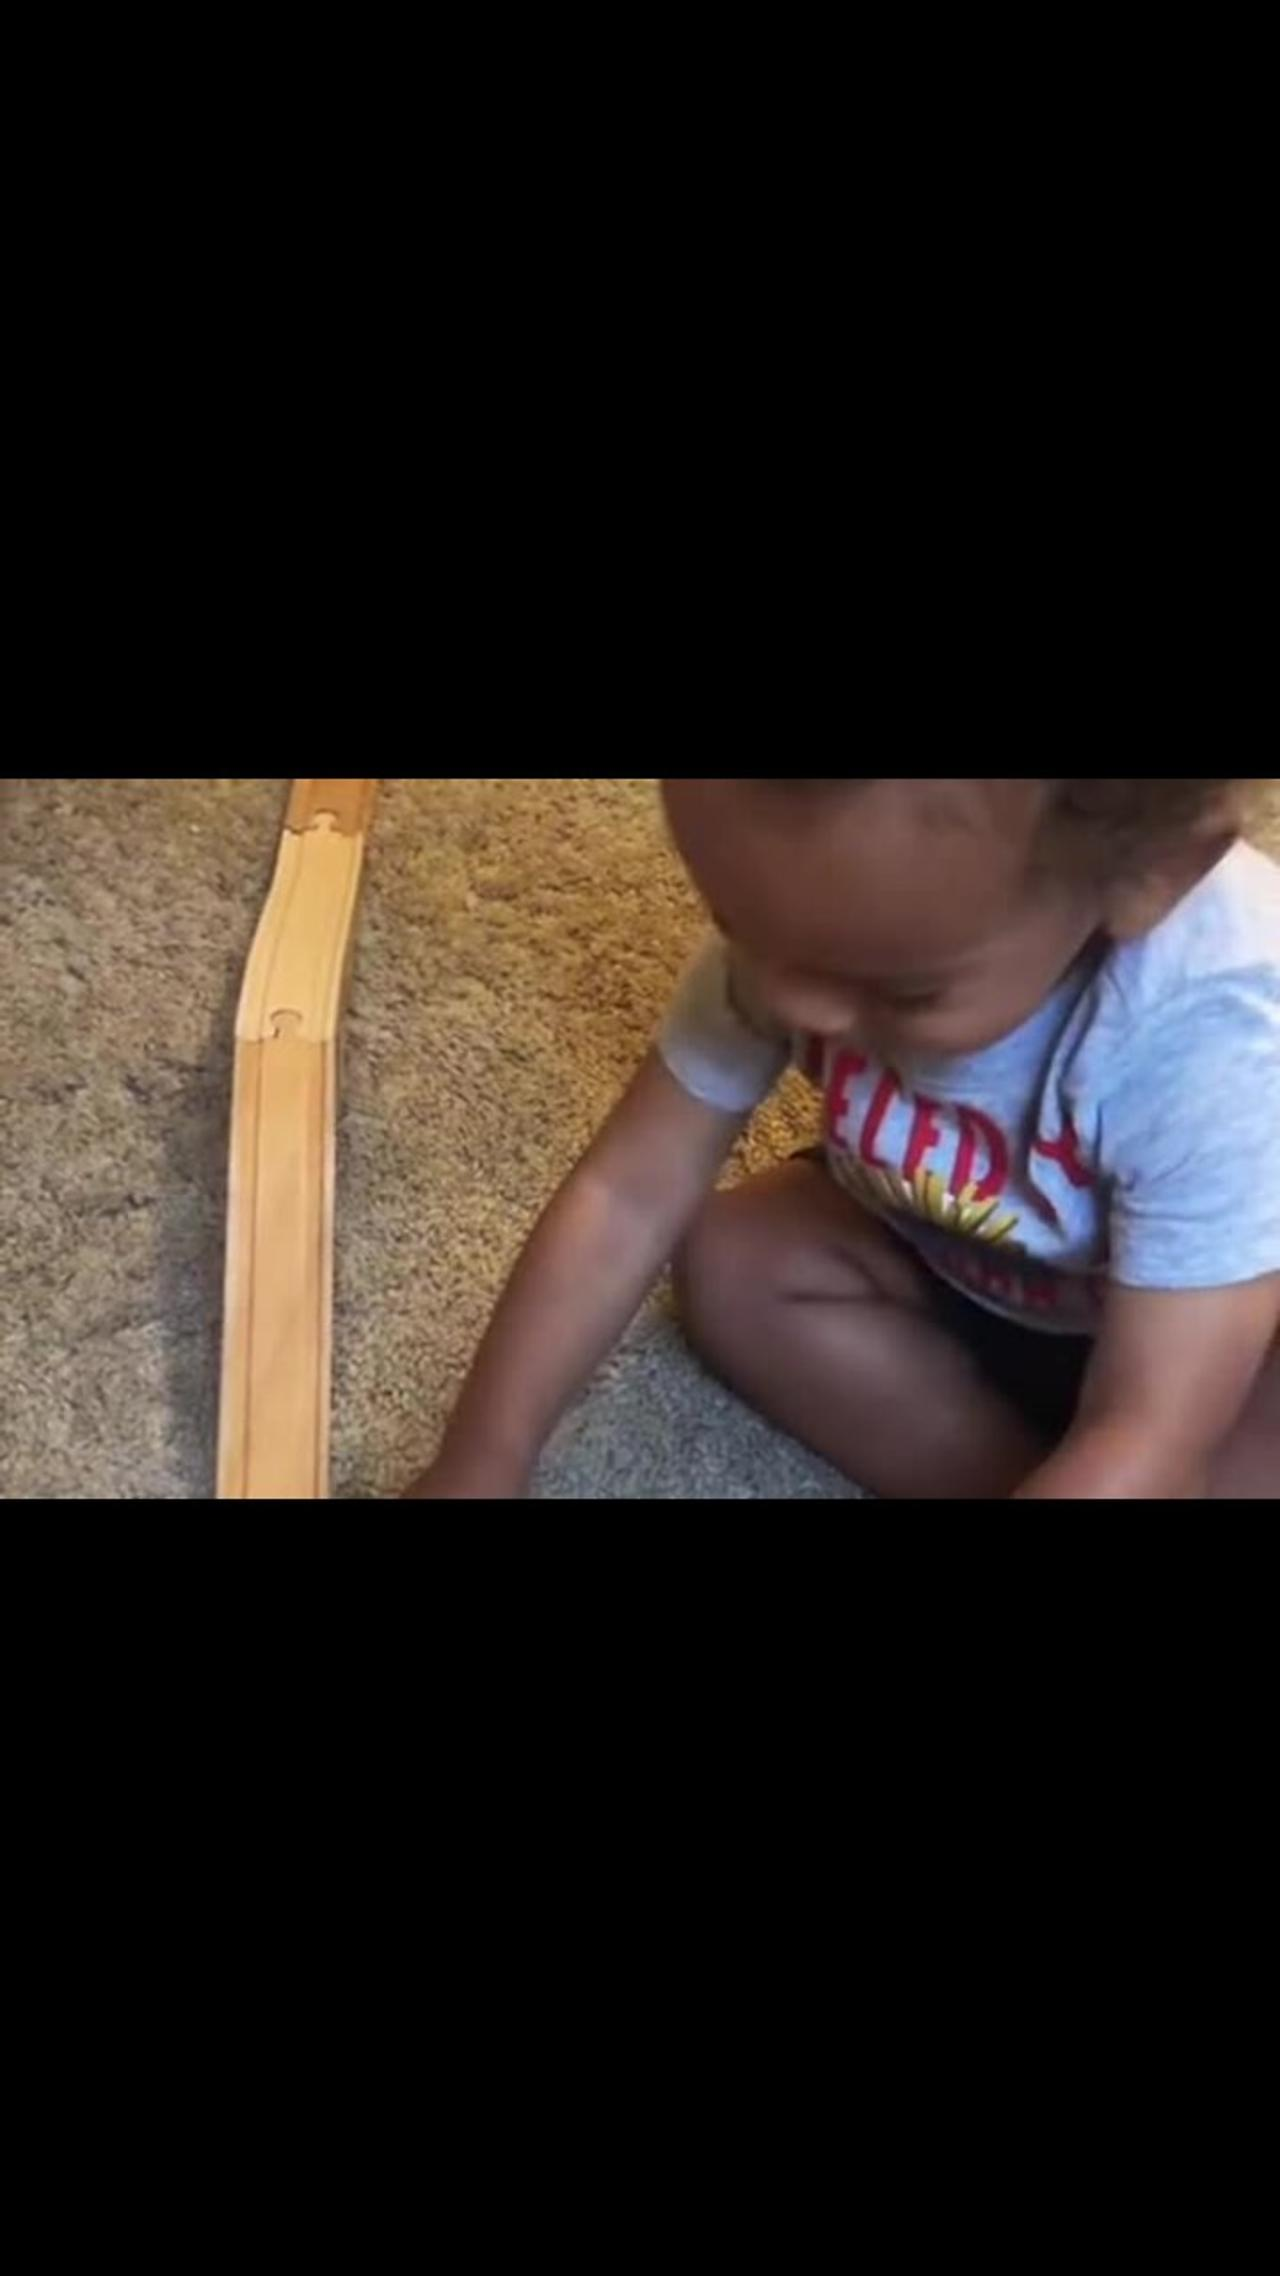 Toddler asks for help in extremely sweet manner